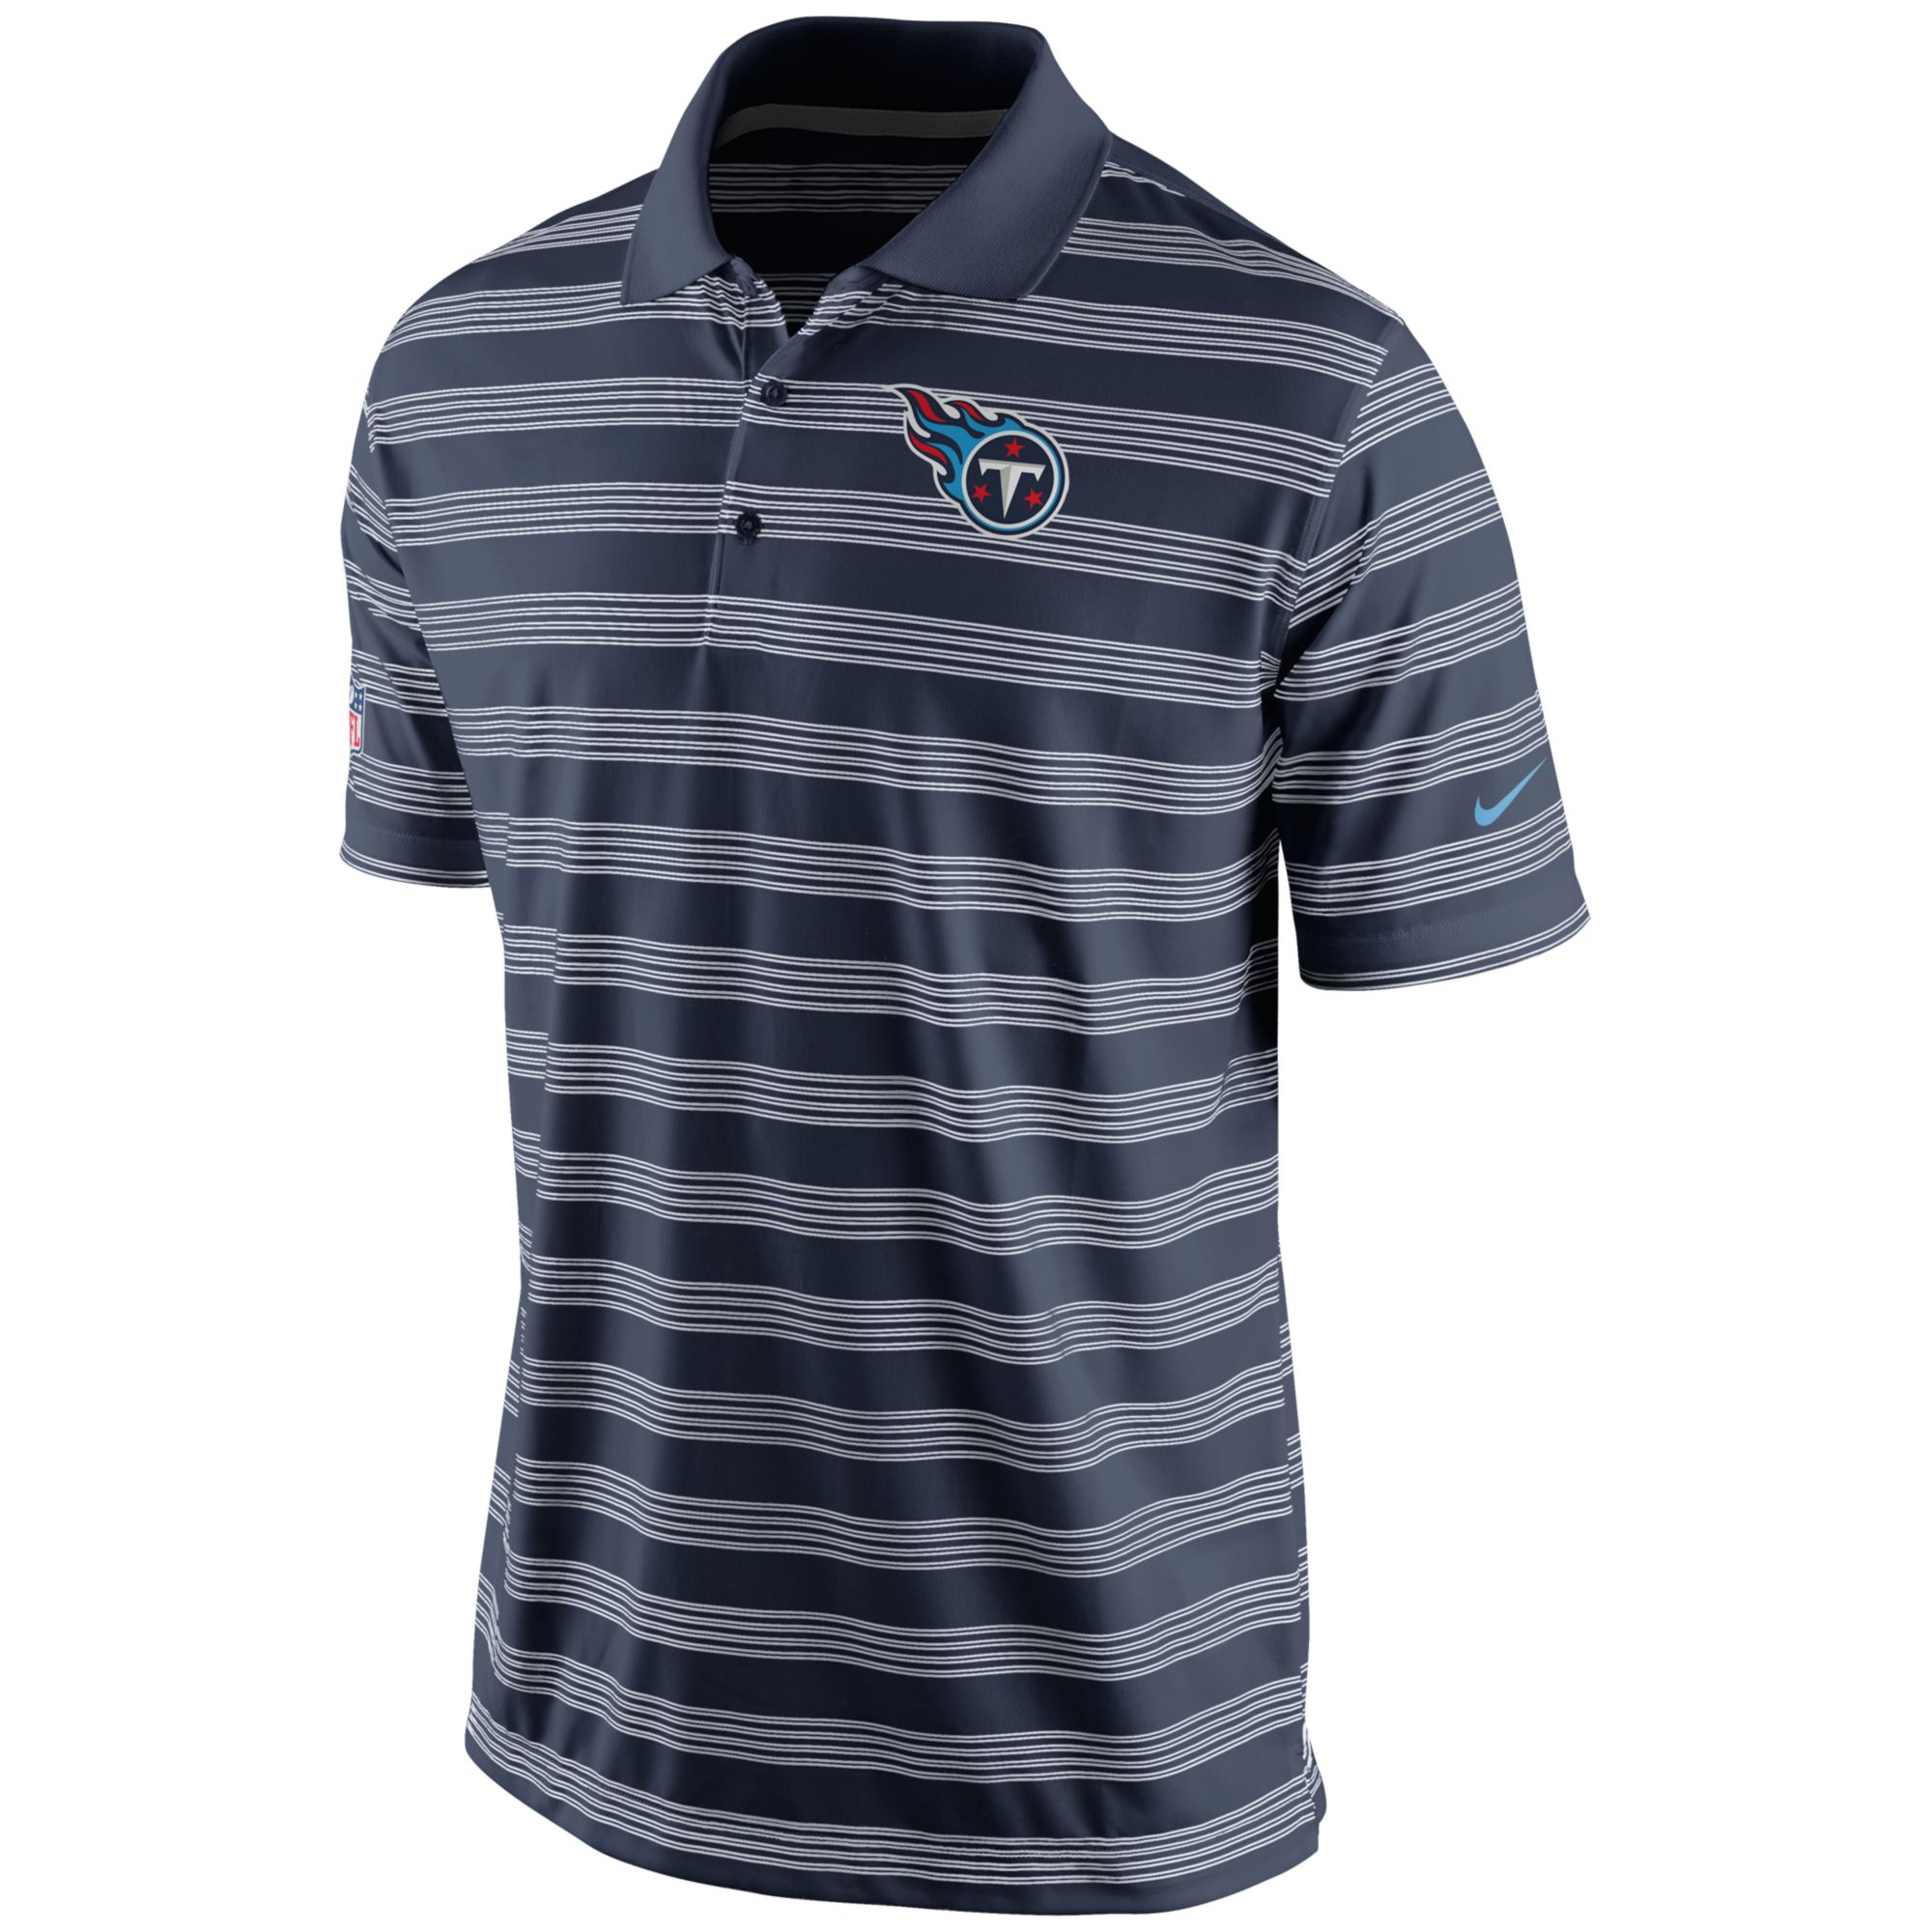 Nike men 39 s tennessee titans preseason polo shirt in blue for Navy blue and white nike shirt